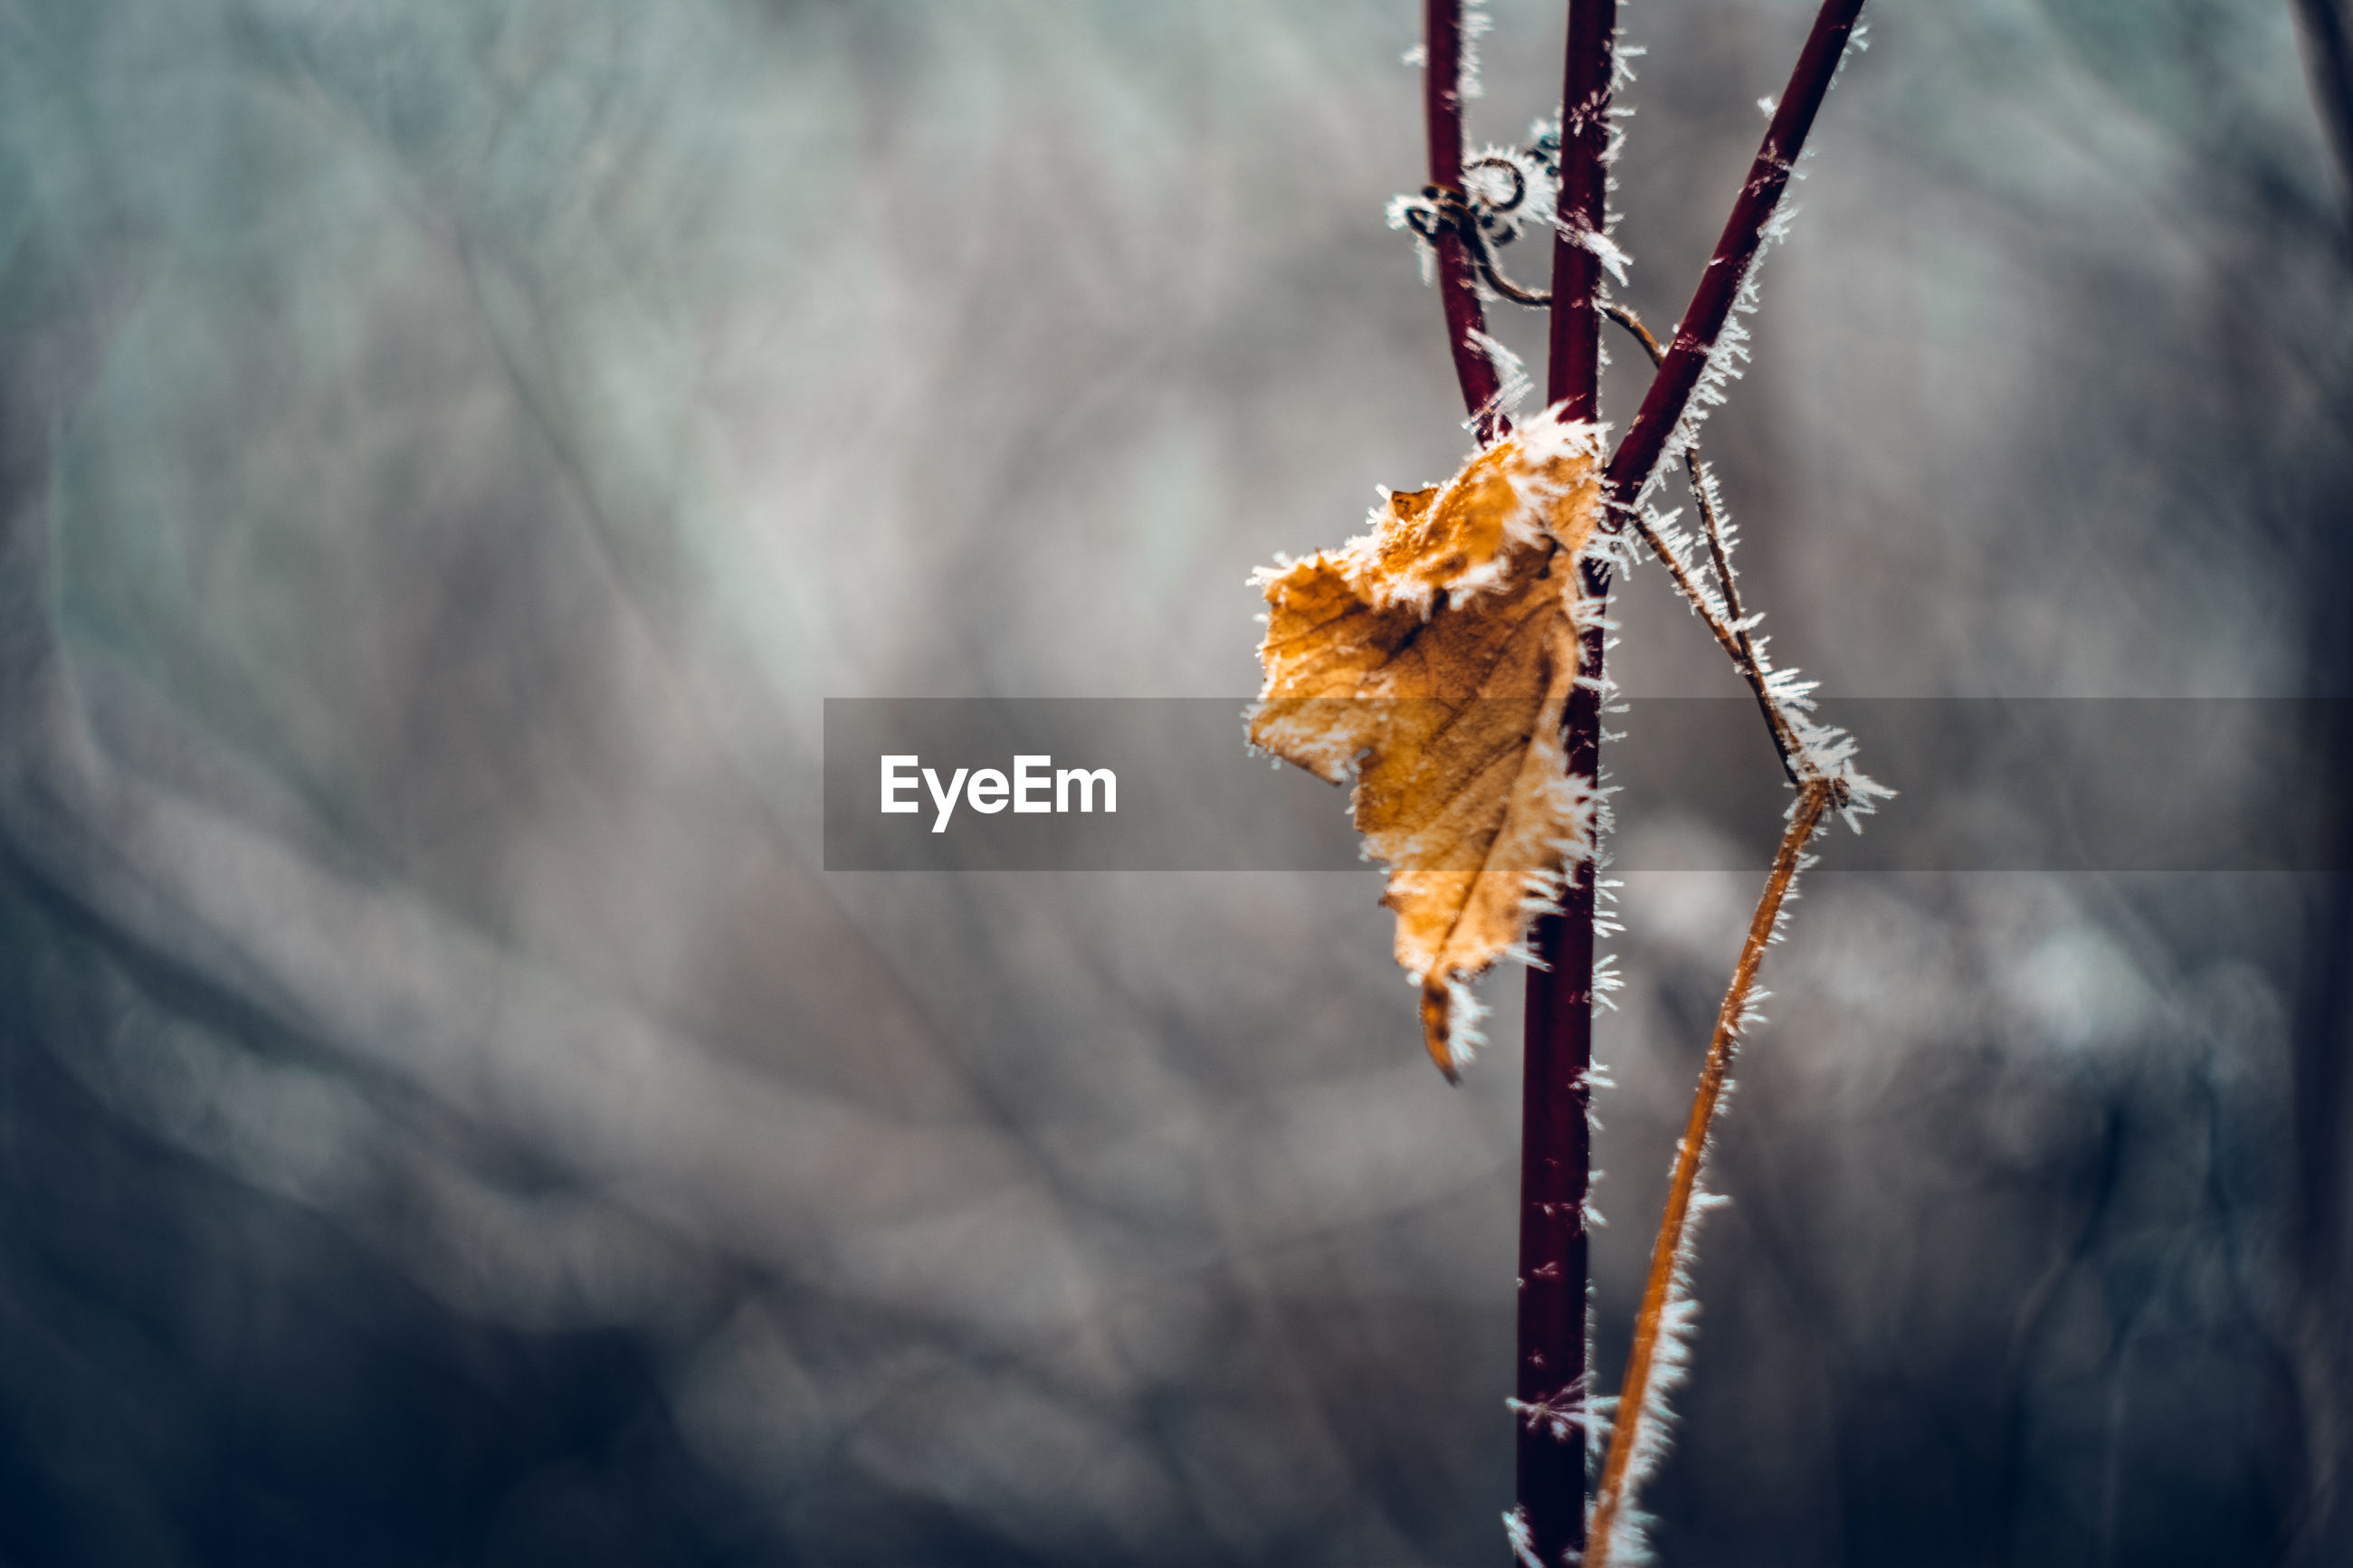 plant, close-up, nature, winter, no people, focus on foreground, cold temperature, beauty in nature, day, leaf, plant part, outdoors, fragility, vulnerability, ice, frozen, change, dry, tranquility, leaves, wilted plant